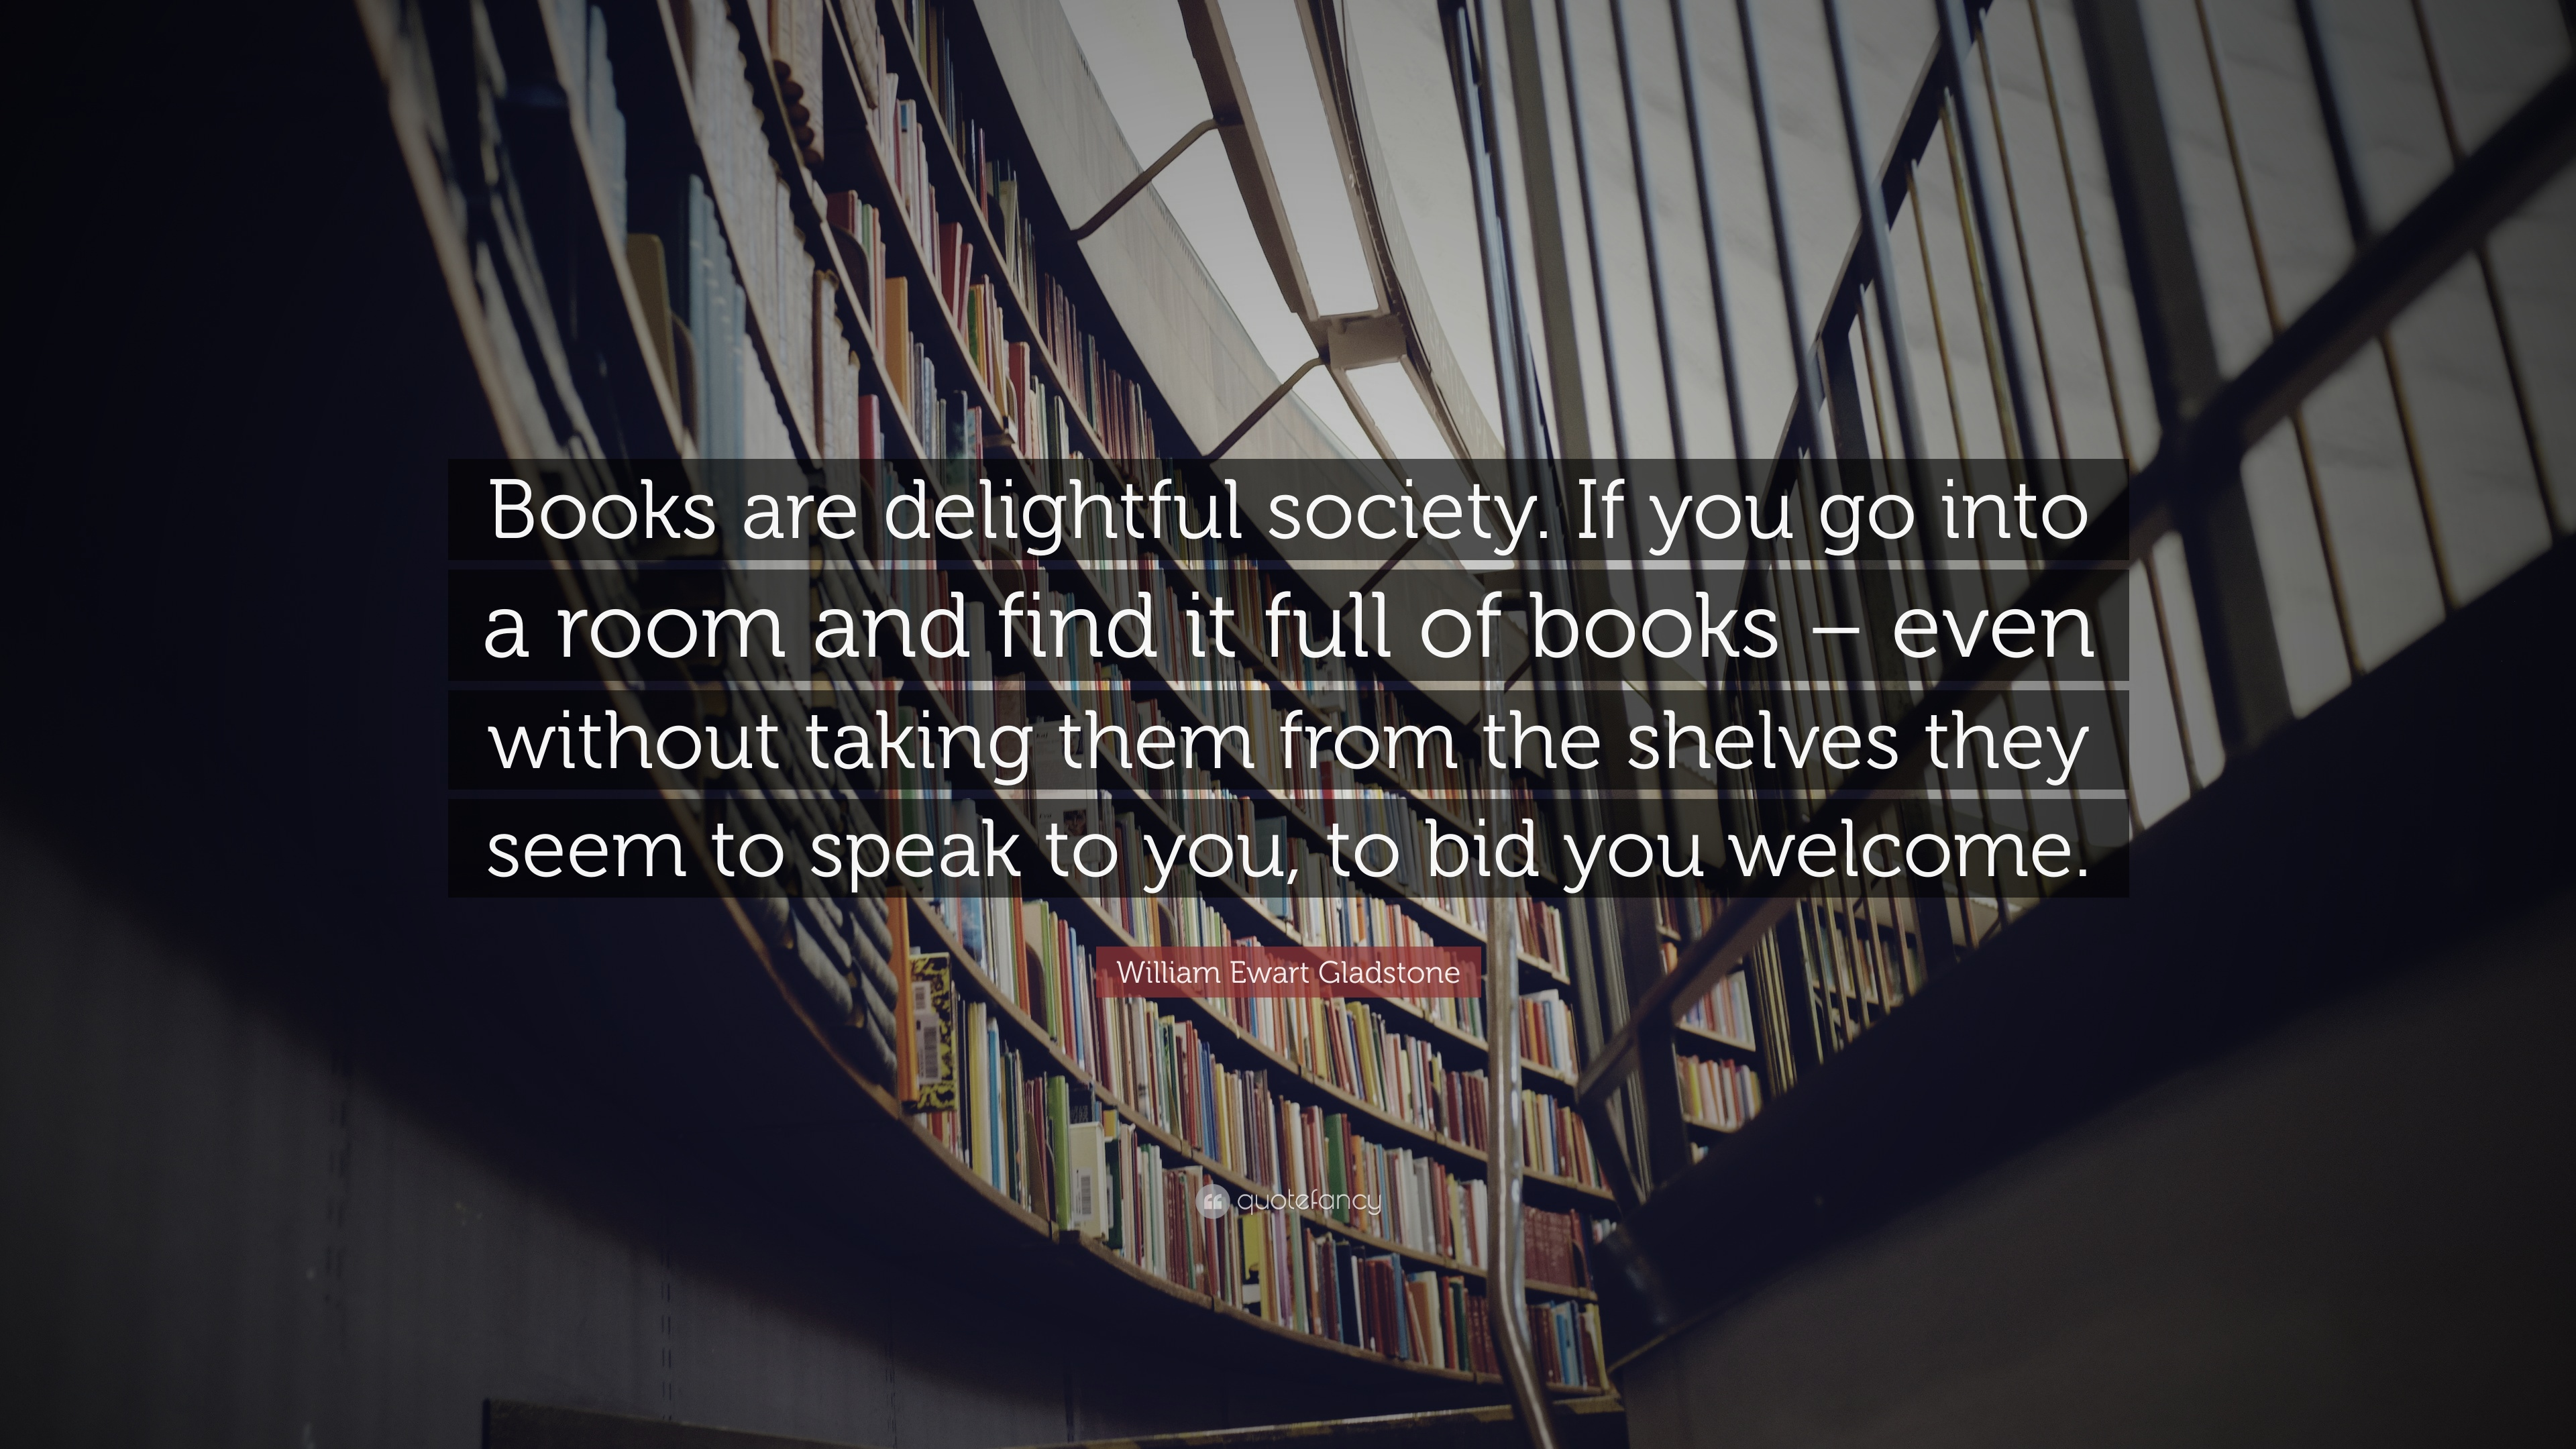 quote of the day, blog post, aspasia s. bissas, quote, quotes, book quote. book quotes, quote of the week, william gladstone, books are delightful society, if you go into a room and find it full of books they seem to speak to you to bid you welcome, aspasiasbissas.com